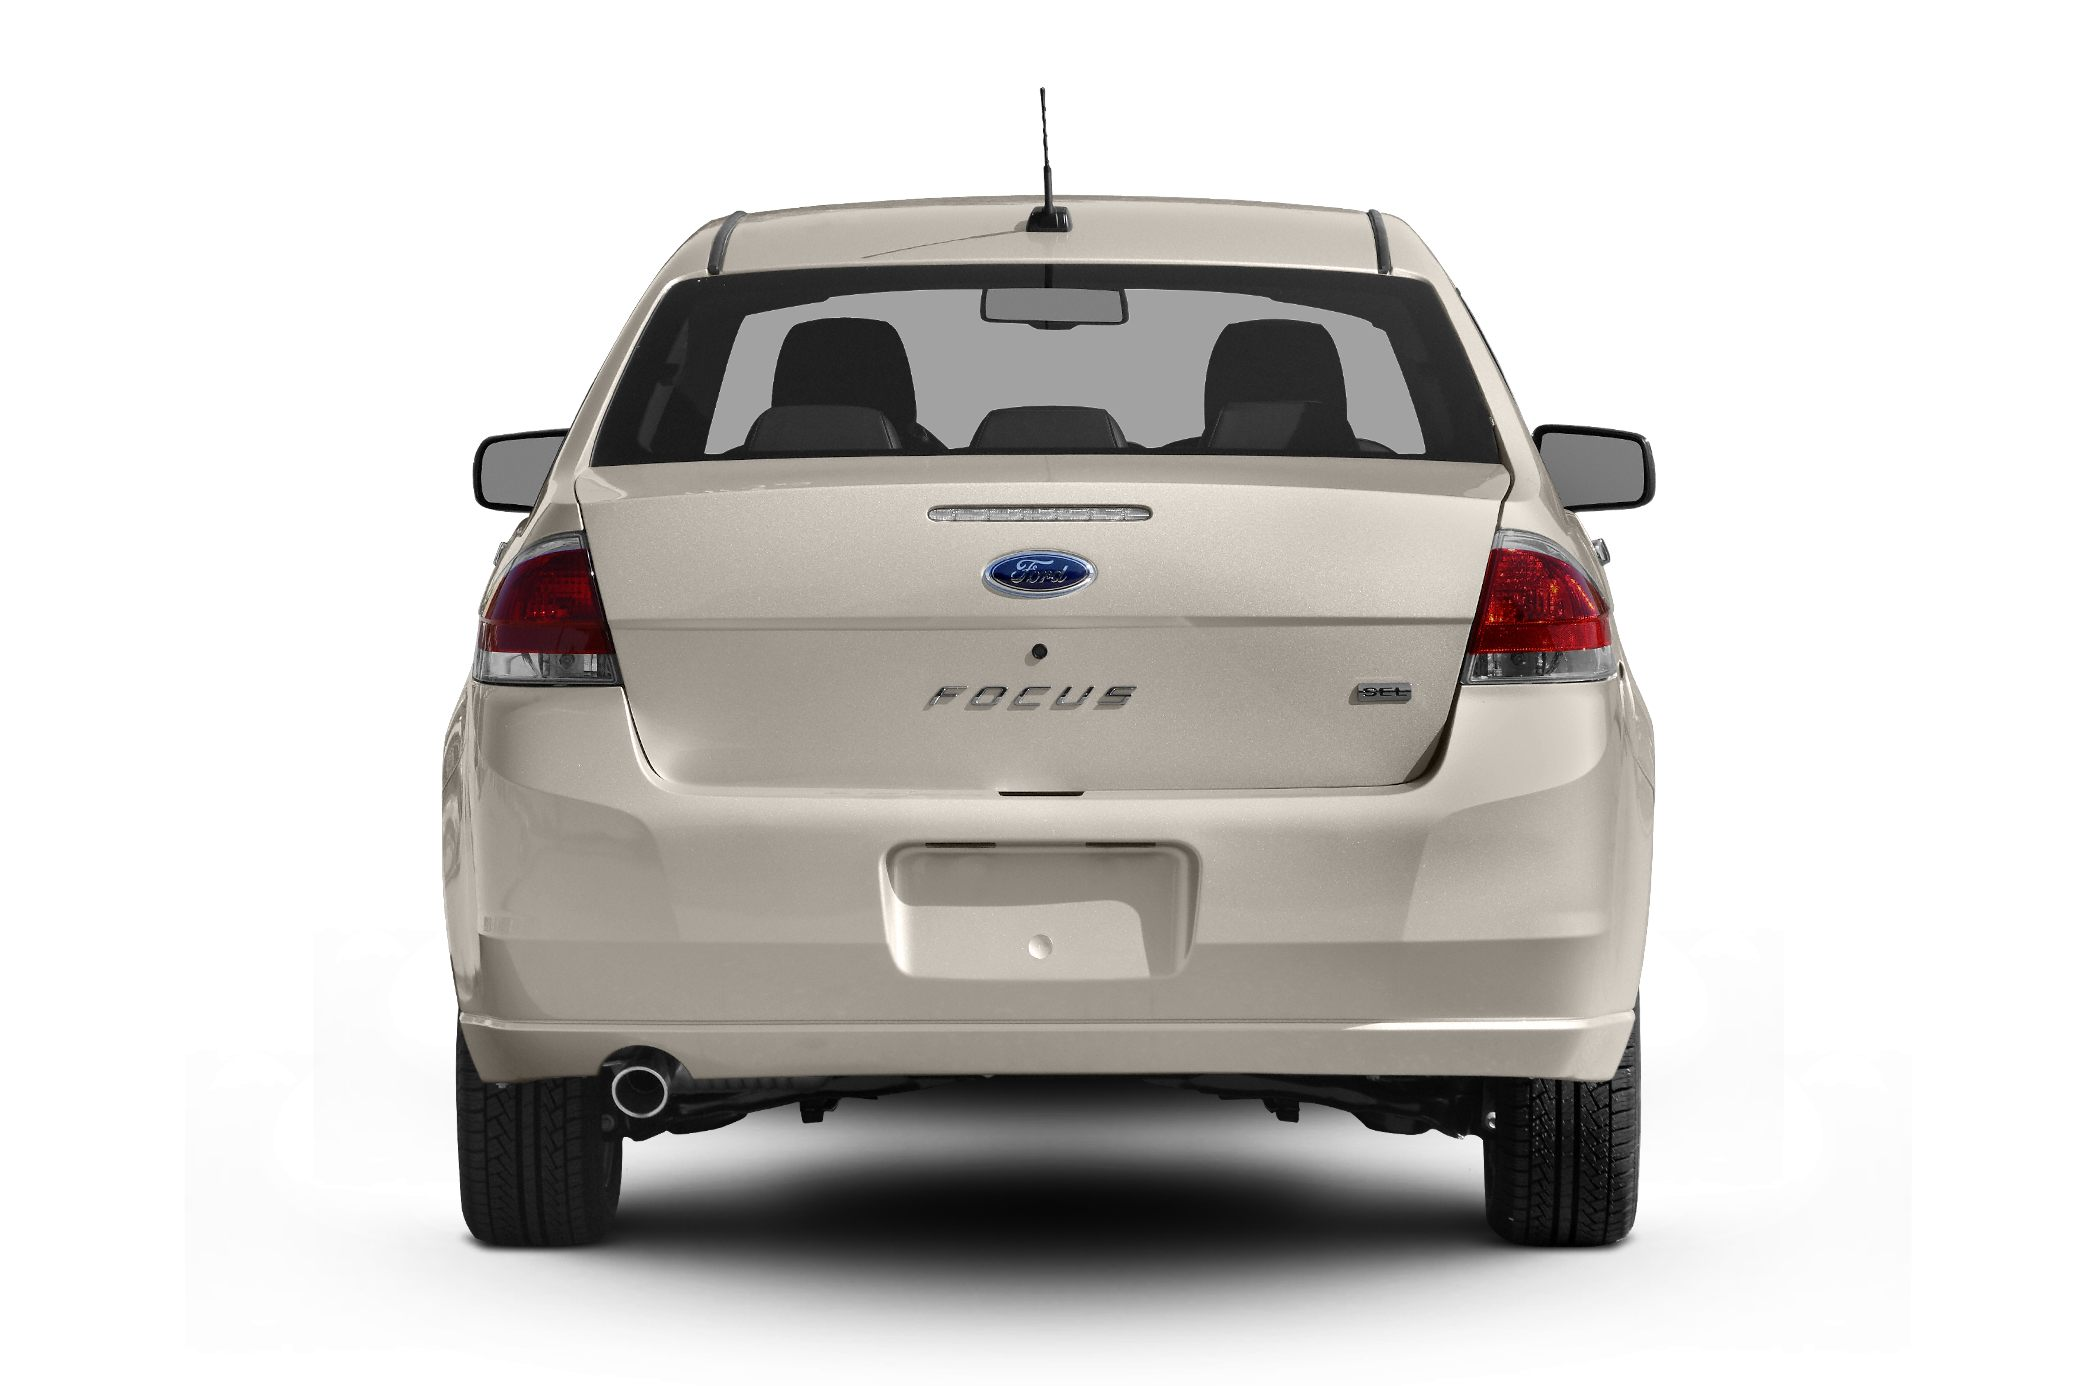 used 2010 ford focus for sale in buckner near louisville ky vin 1fahp3fn5aw176811 [ 2100 x 1386 Pixel ]